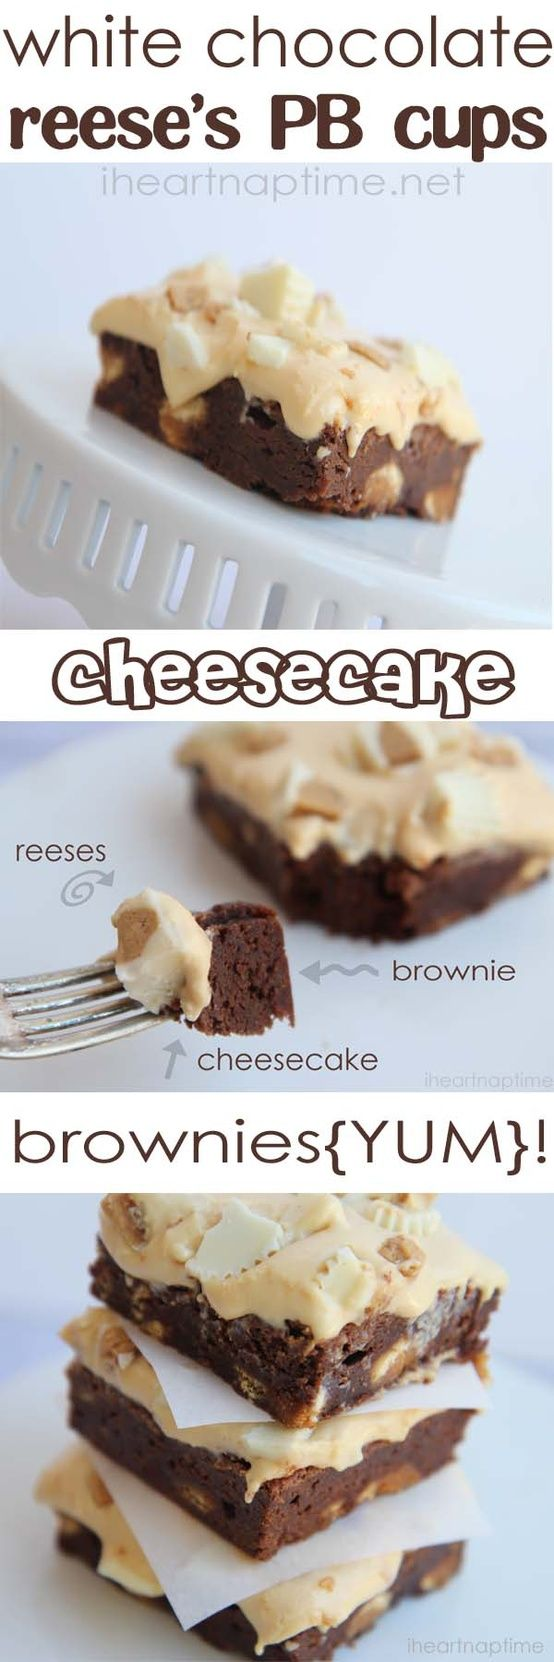 White chocolate...reese's peanut butter cup...cheese cake...brownies ...